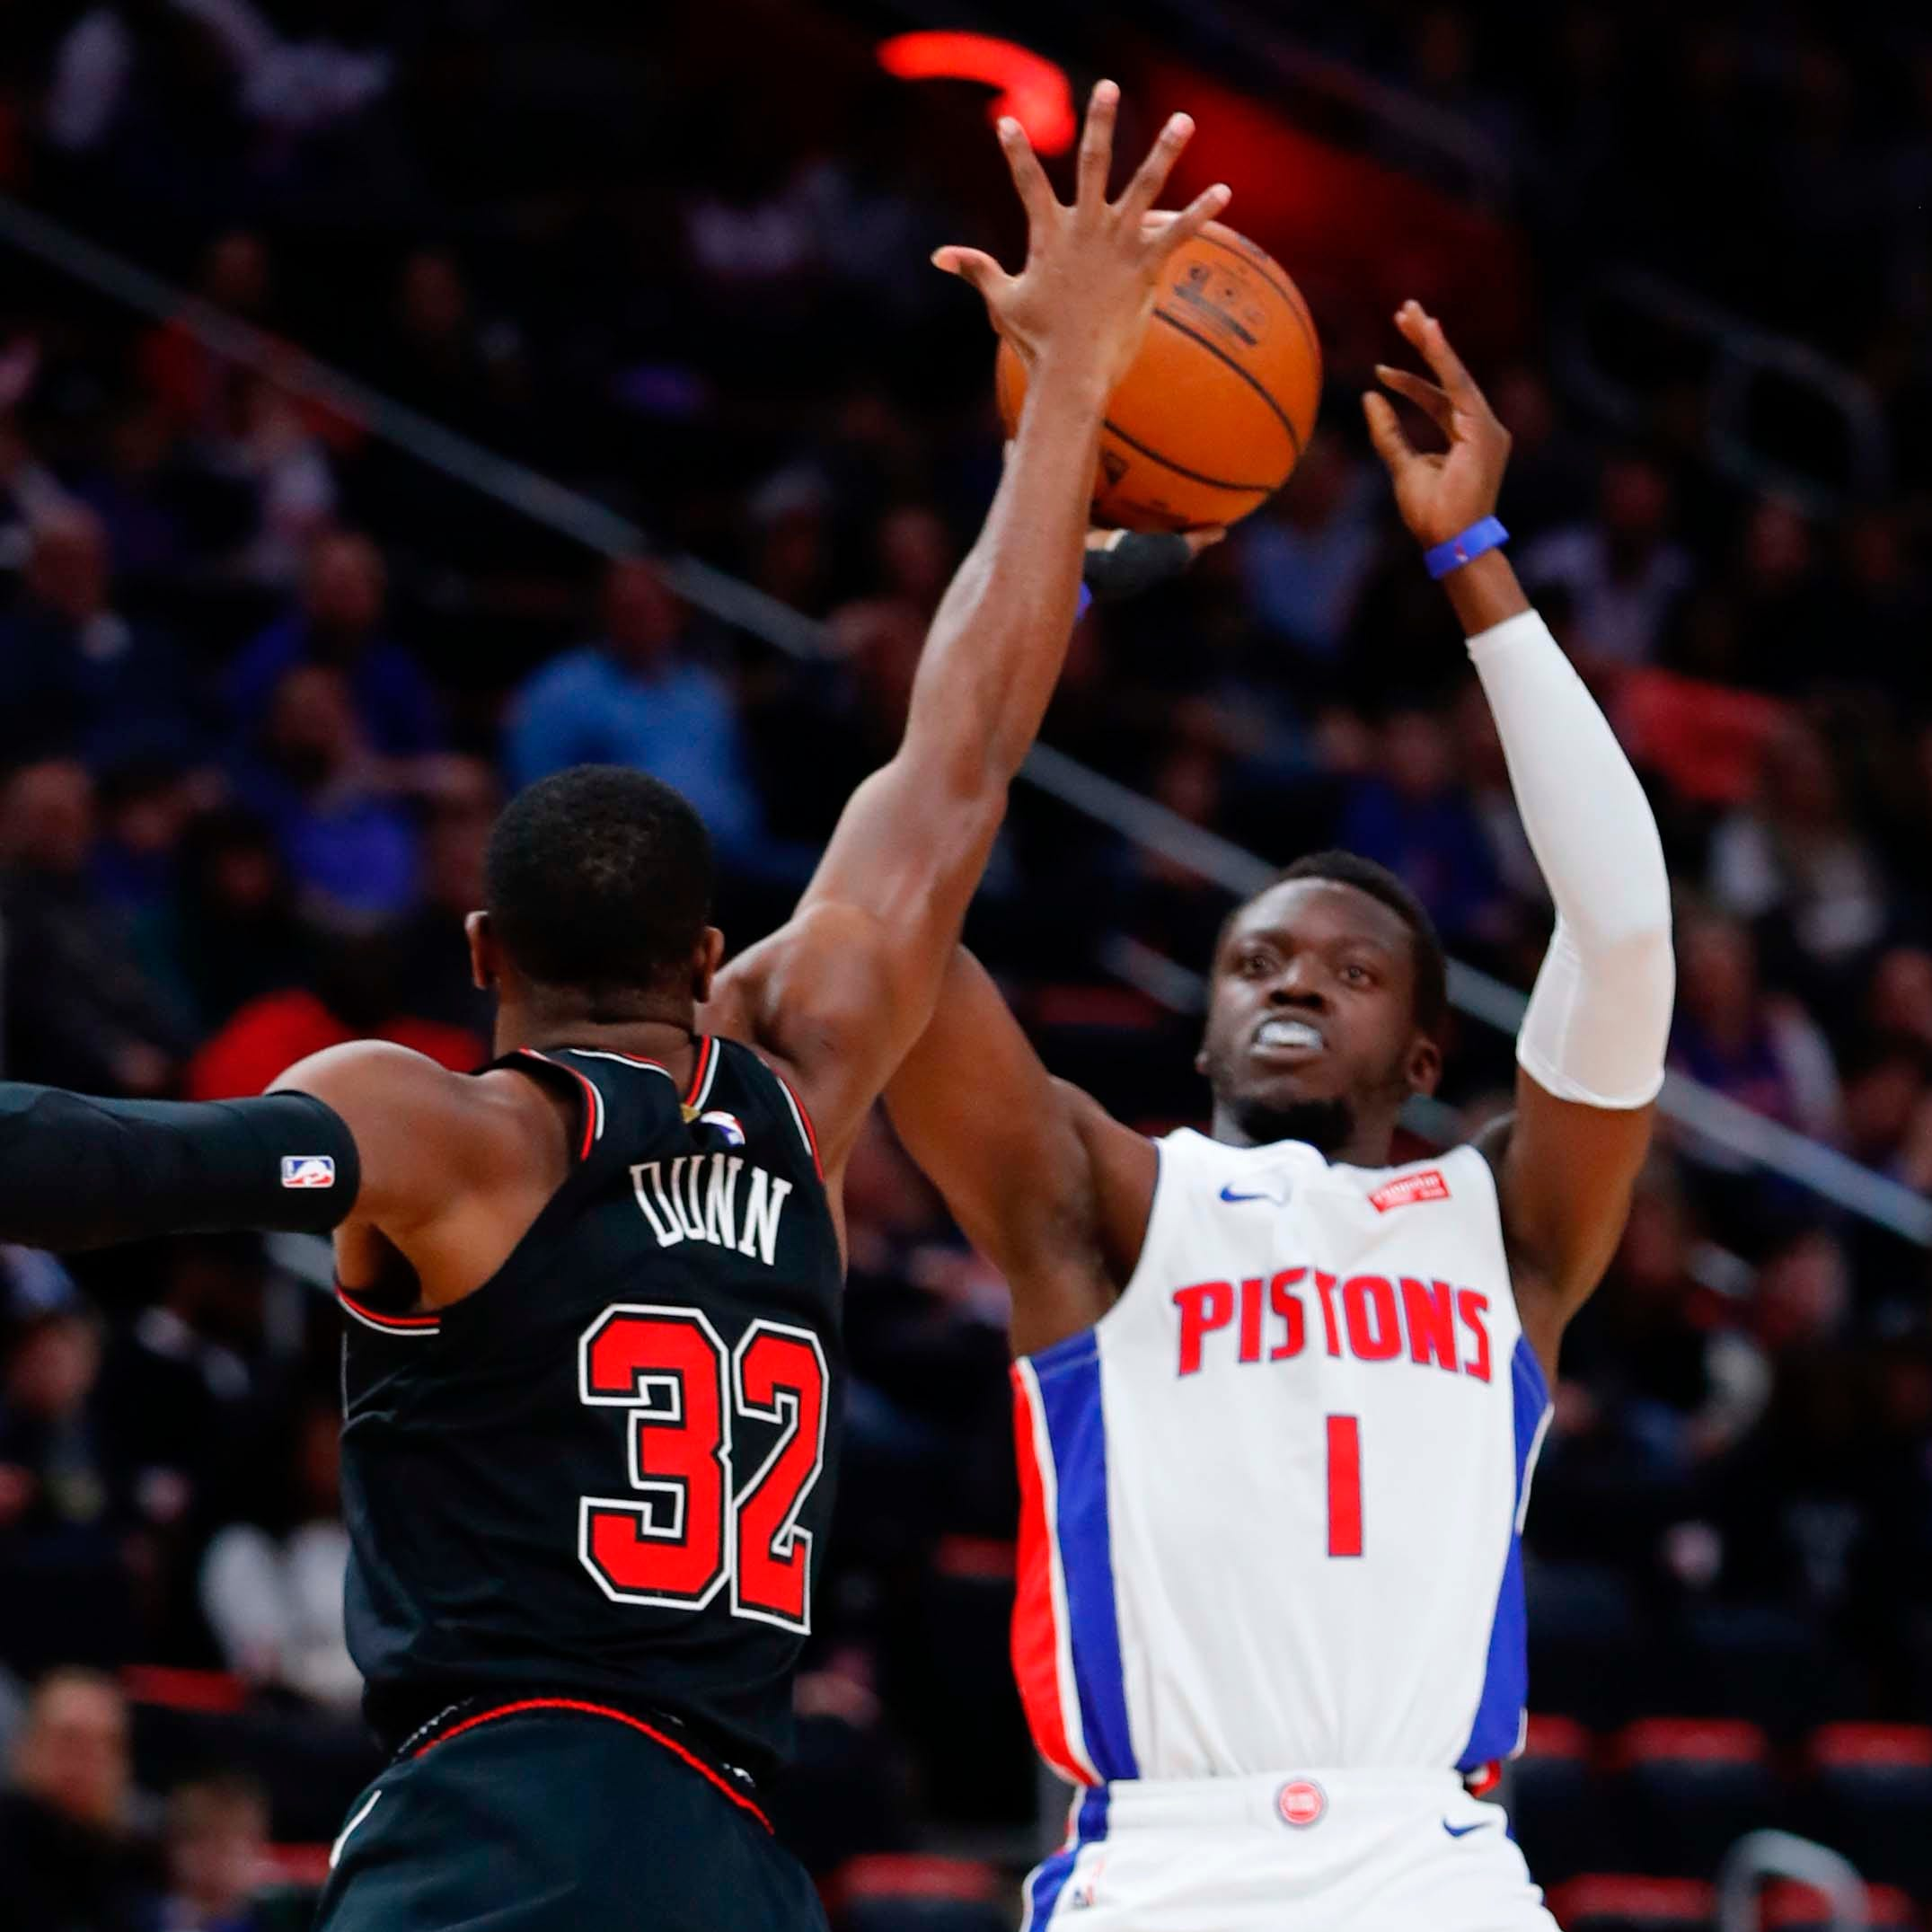 Detroit Pistons on fire from 3, blow out Chicago Bulls, 131-108